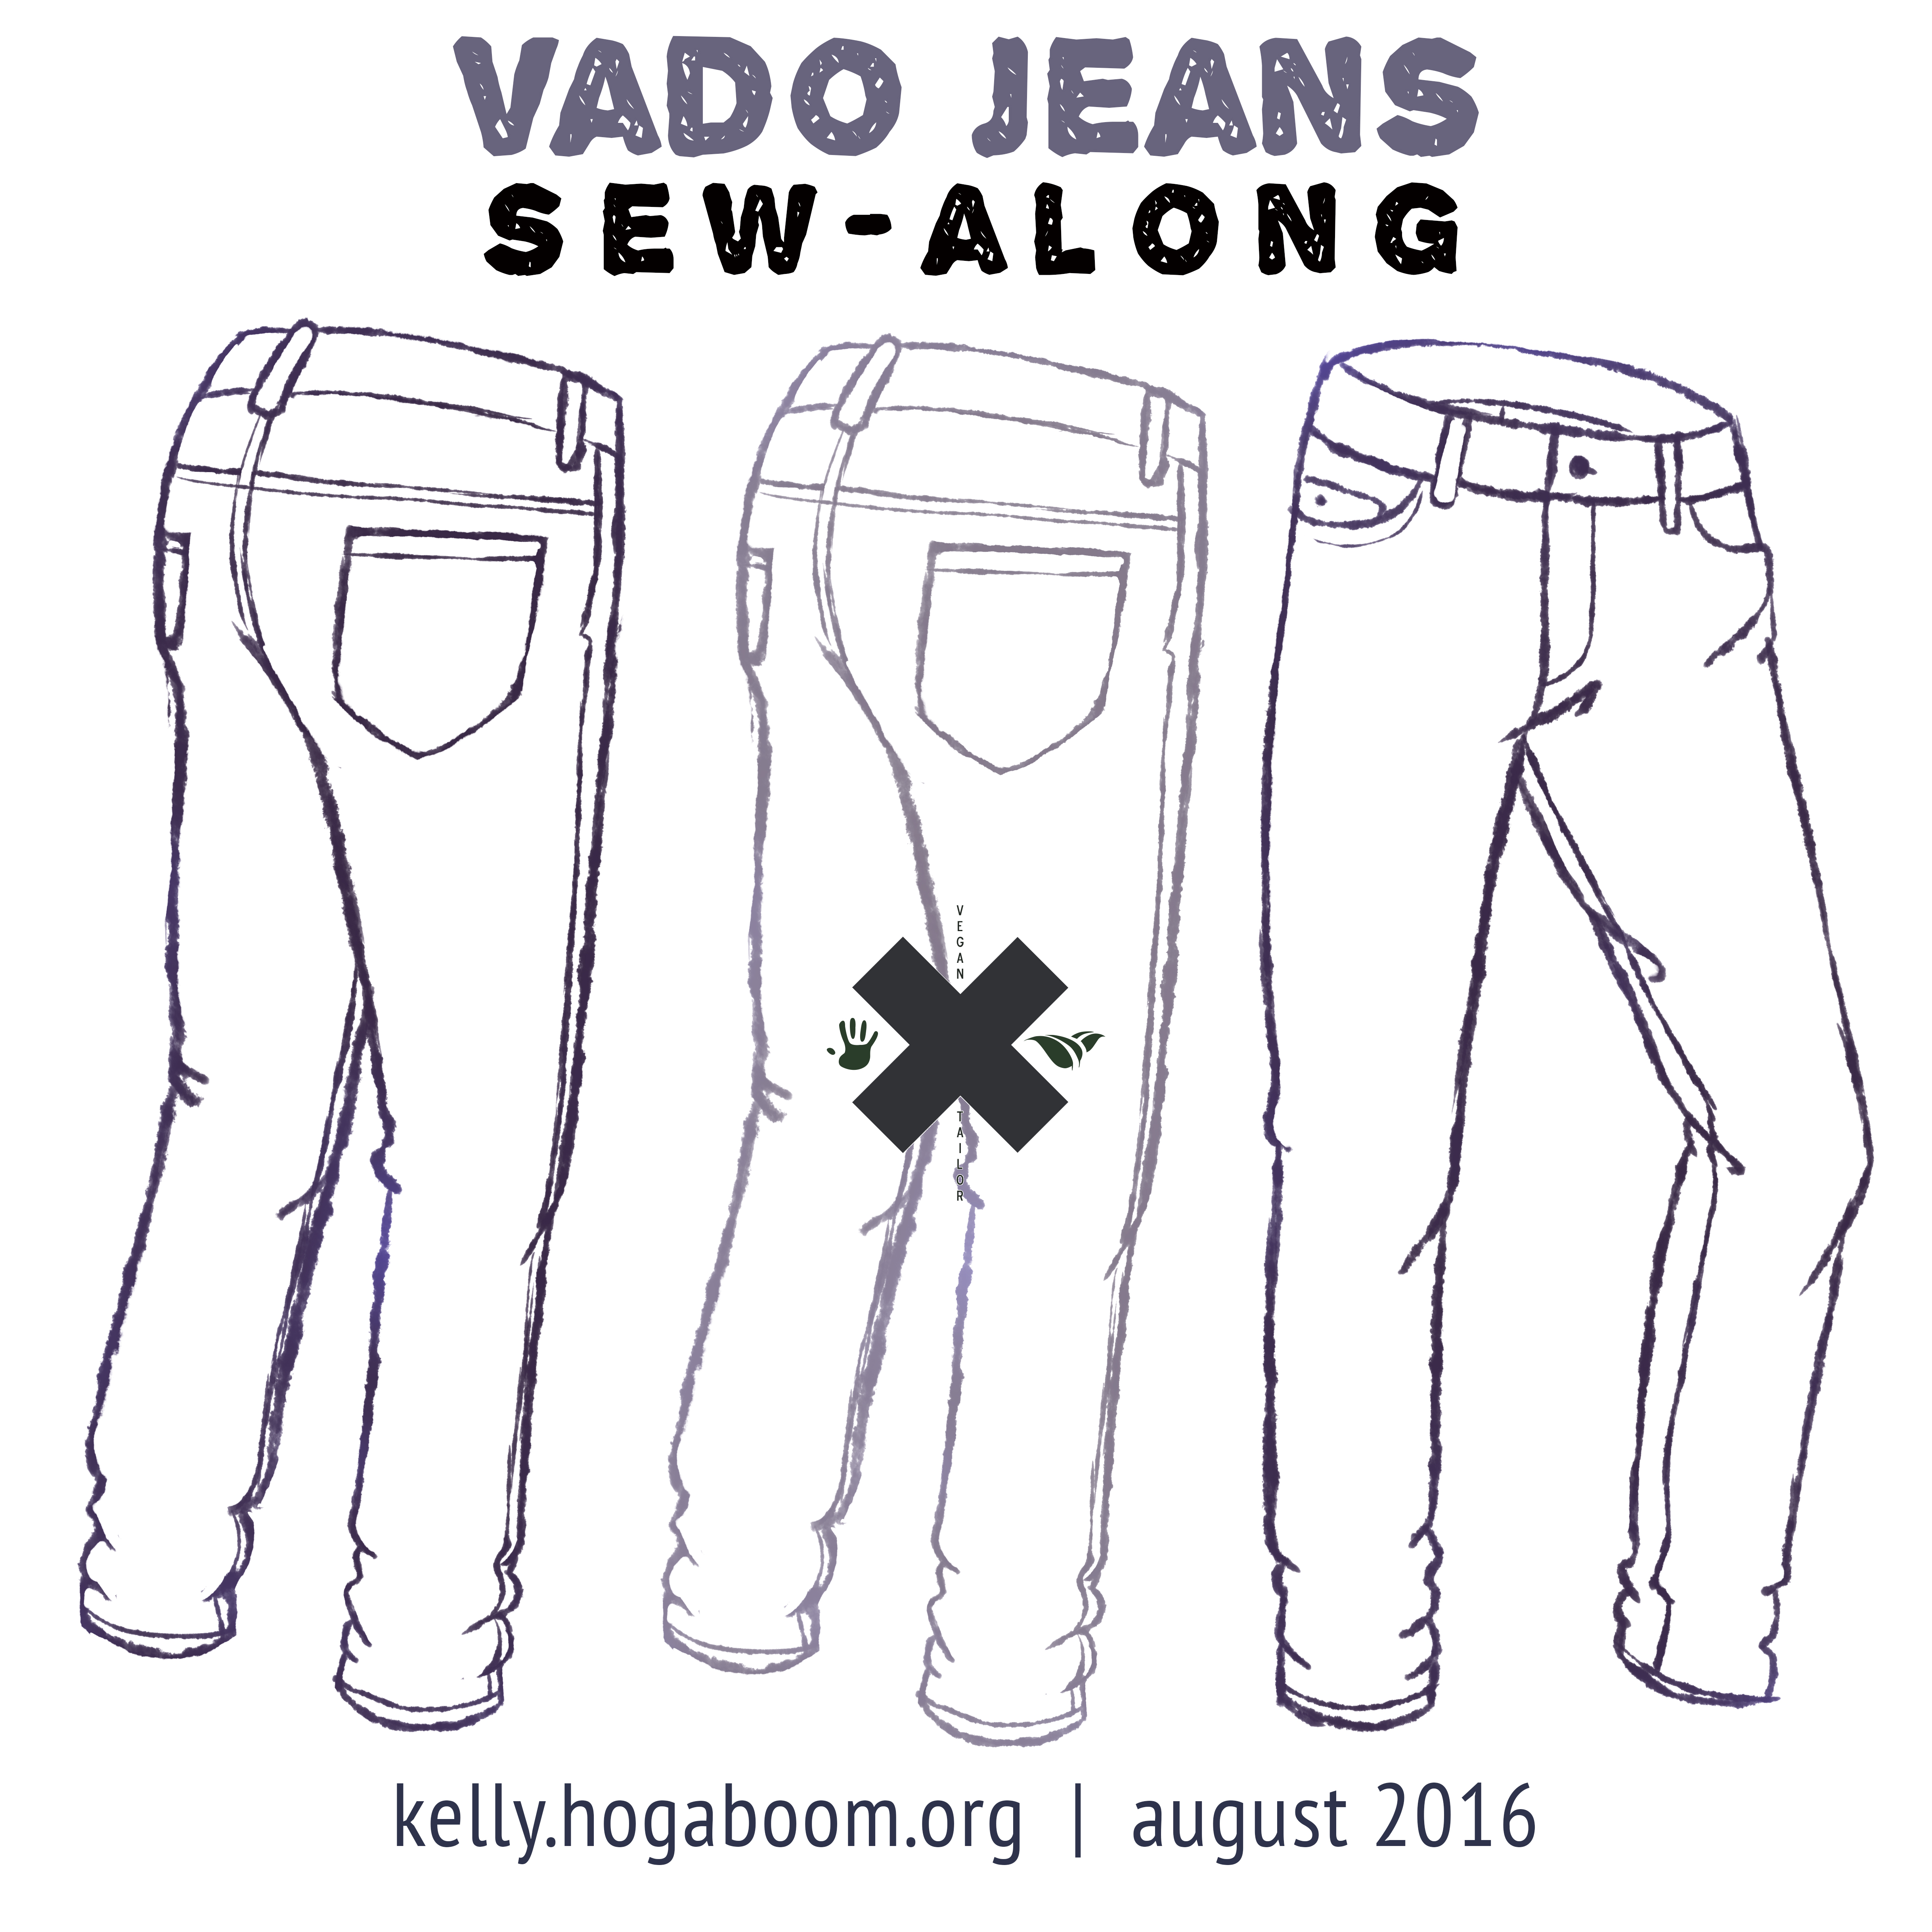 vado jeans sew-along: back pockets & yoke